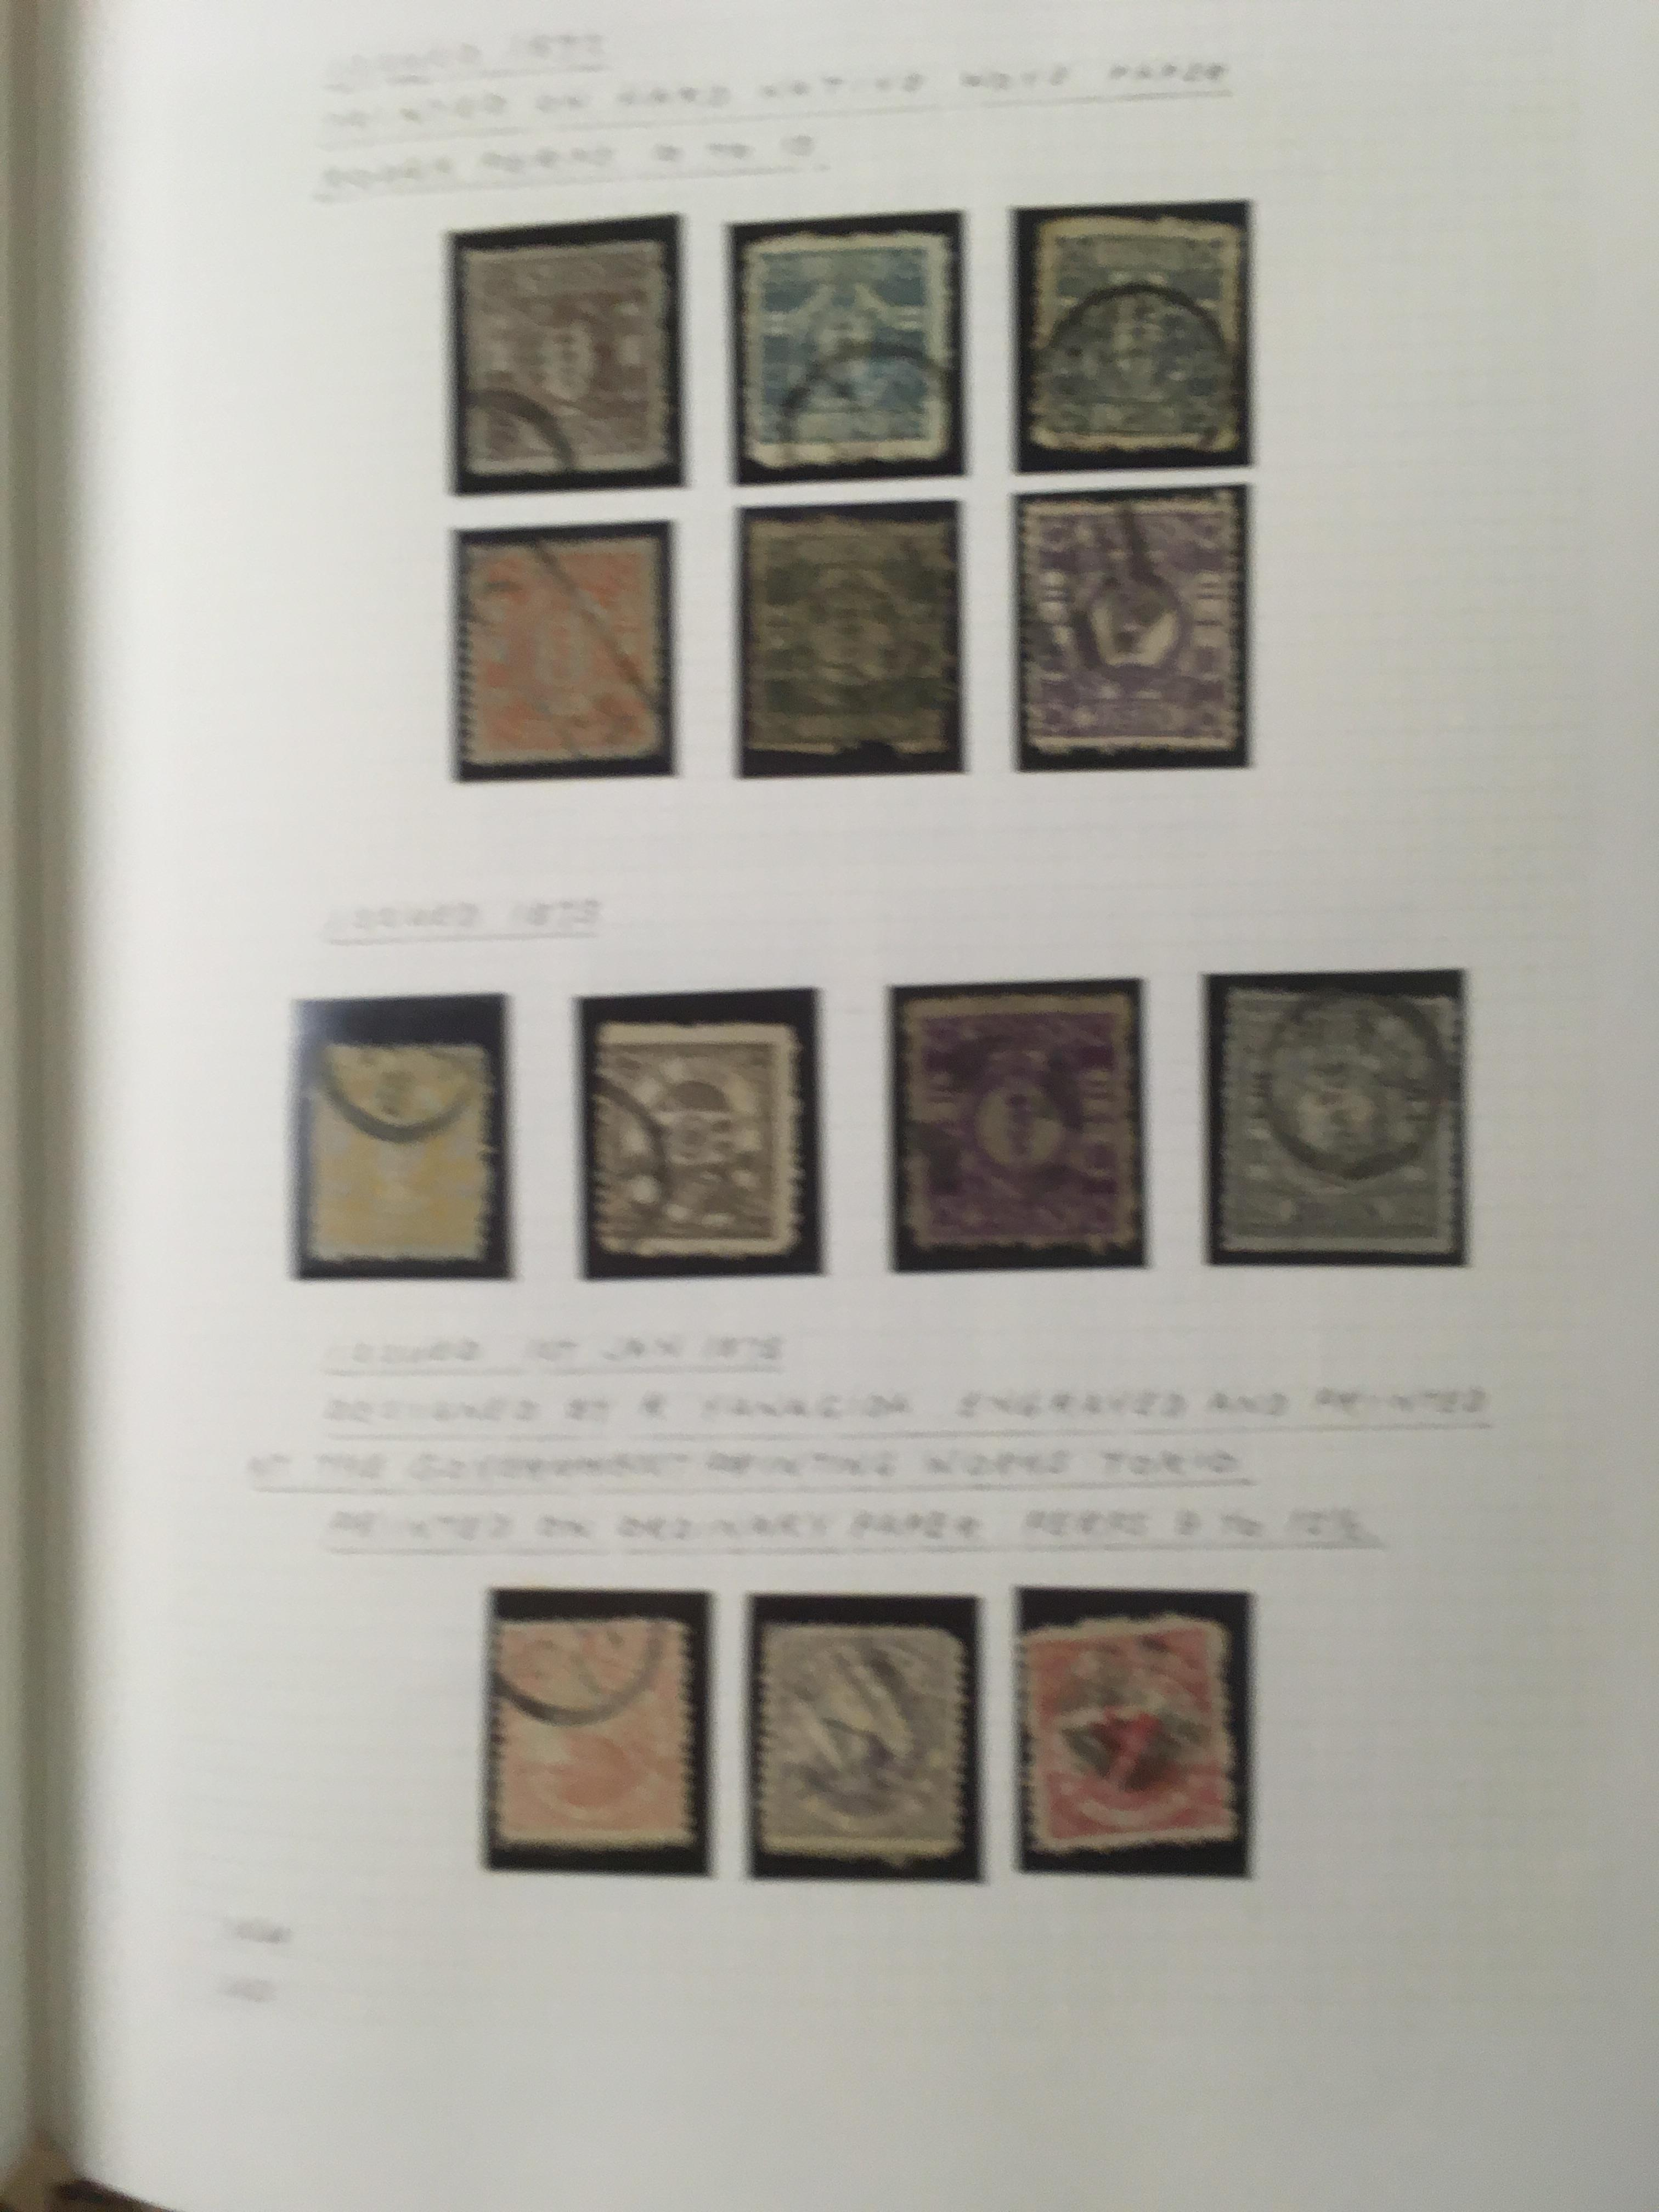 JAPAN: EXTENSIVE USED COLLECTION TO ABOU - Image 3 of 4